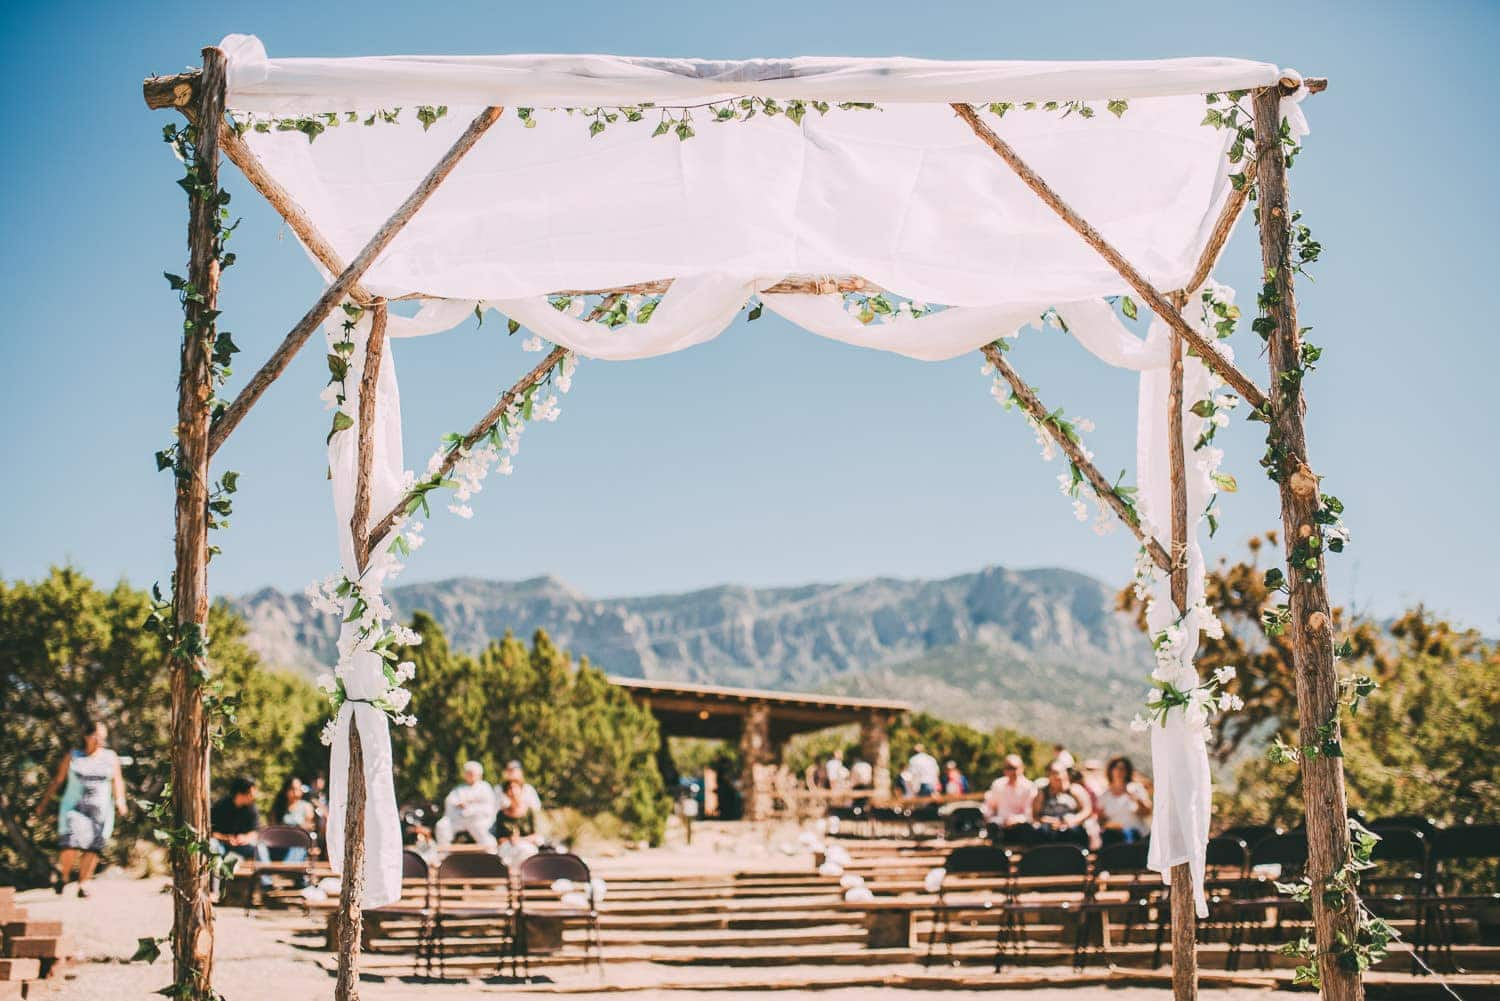 The wedding arch is in the foreground and the blue sky and sandia mountains are in the background